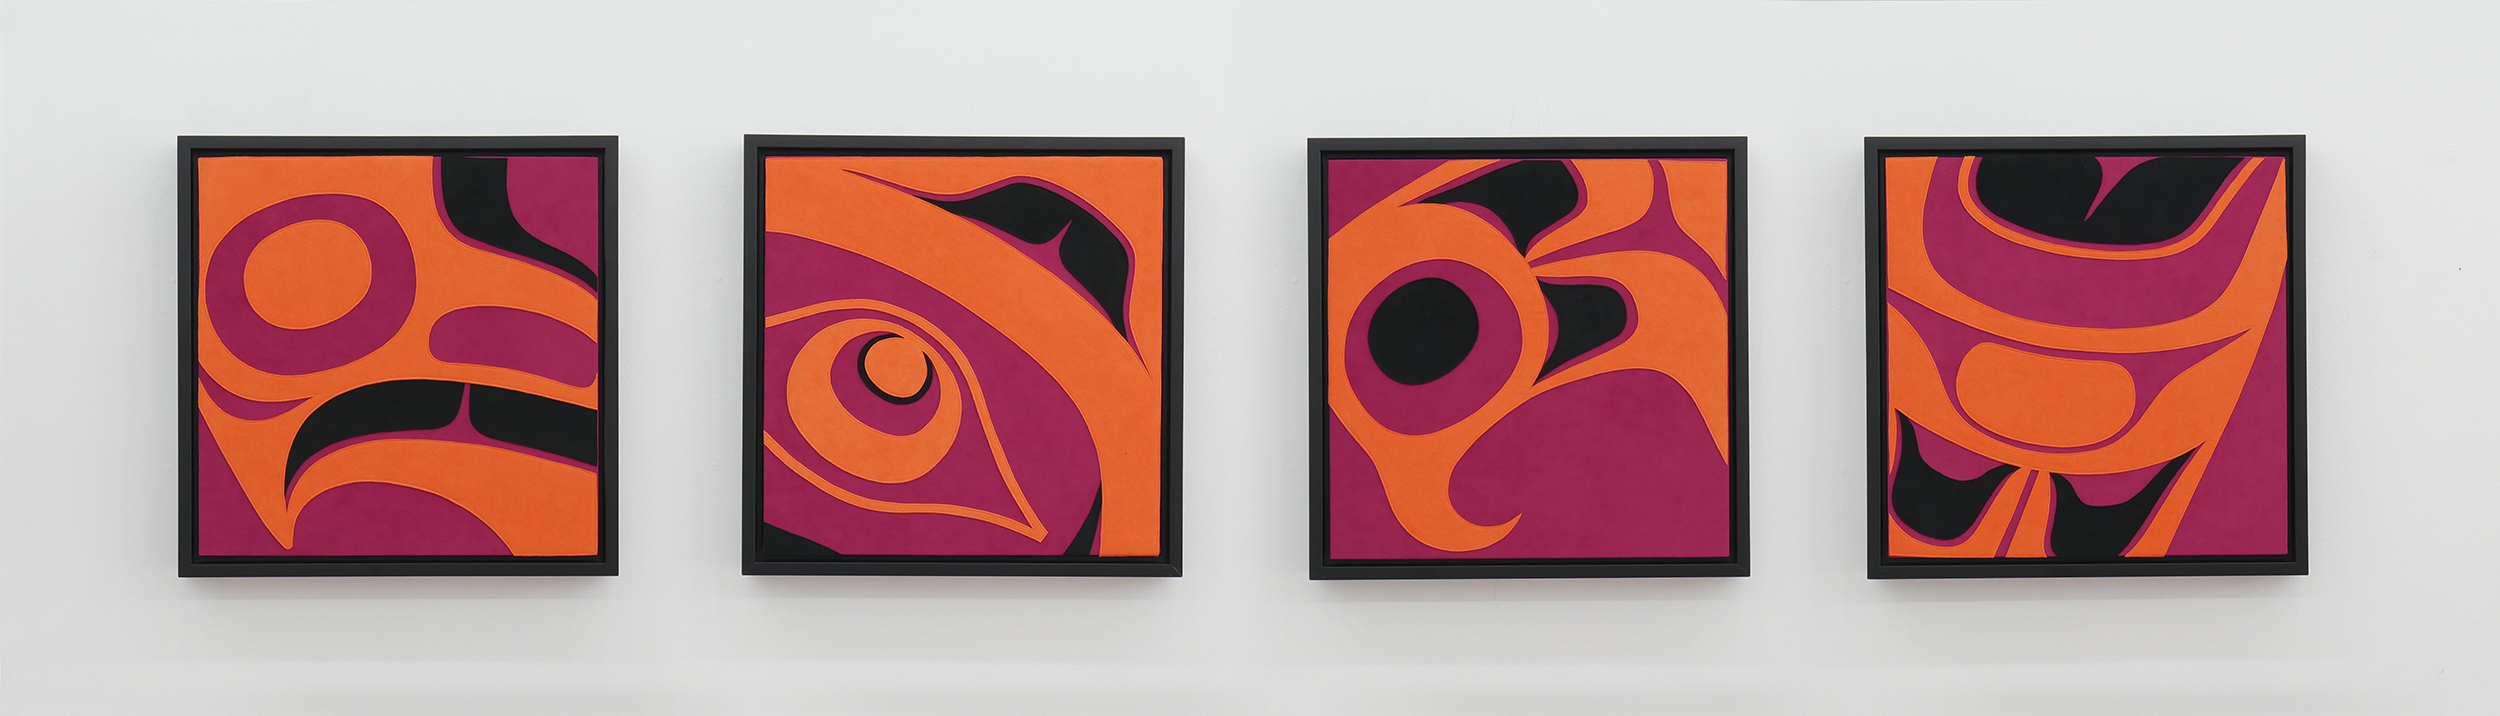 Deconstructed Eagle (Quadtych) (row view), 2019